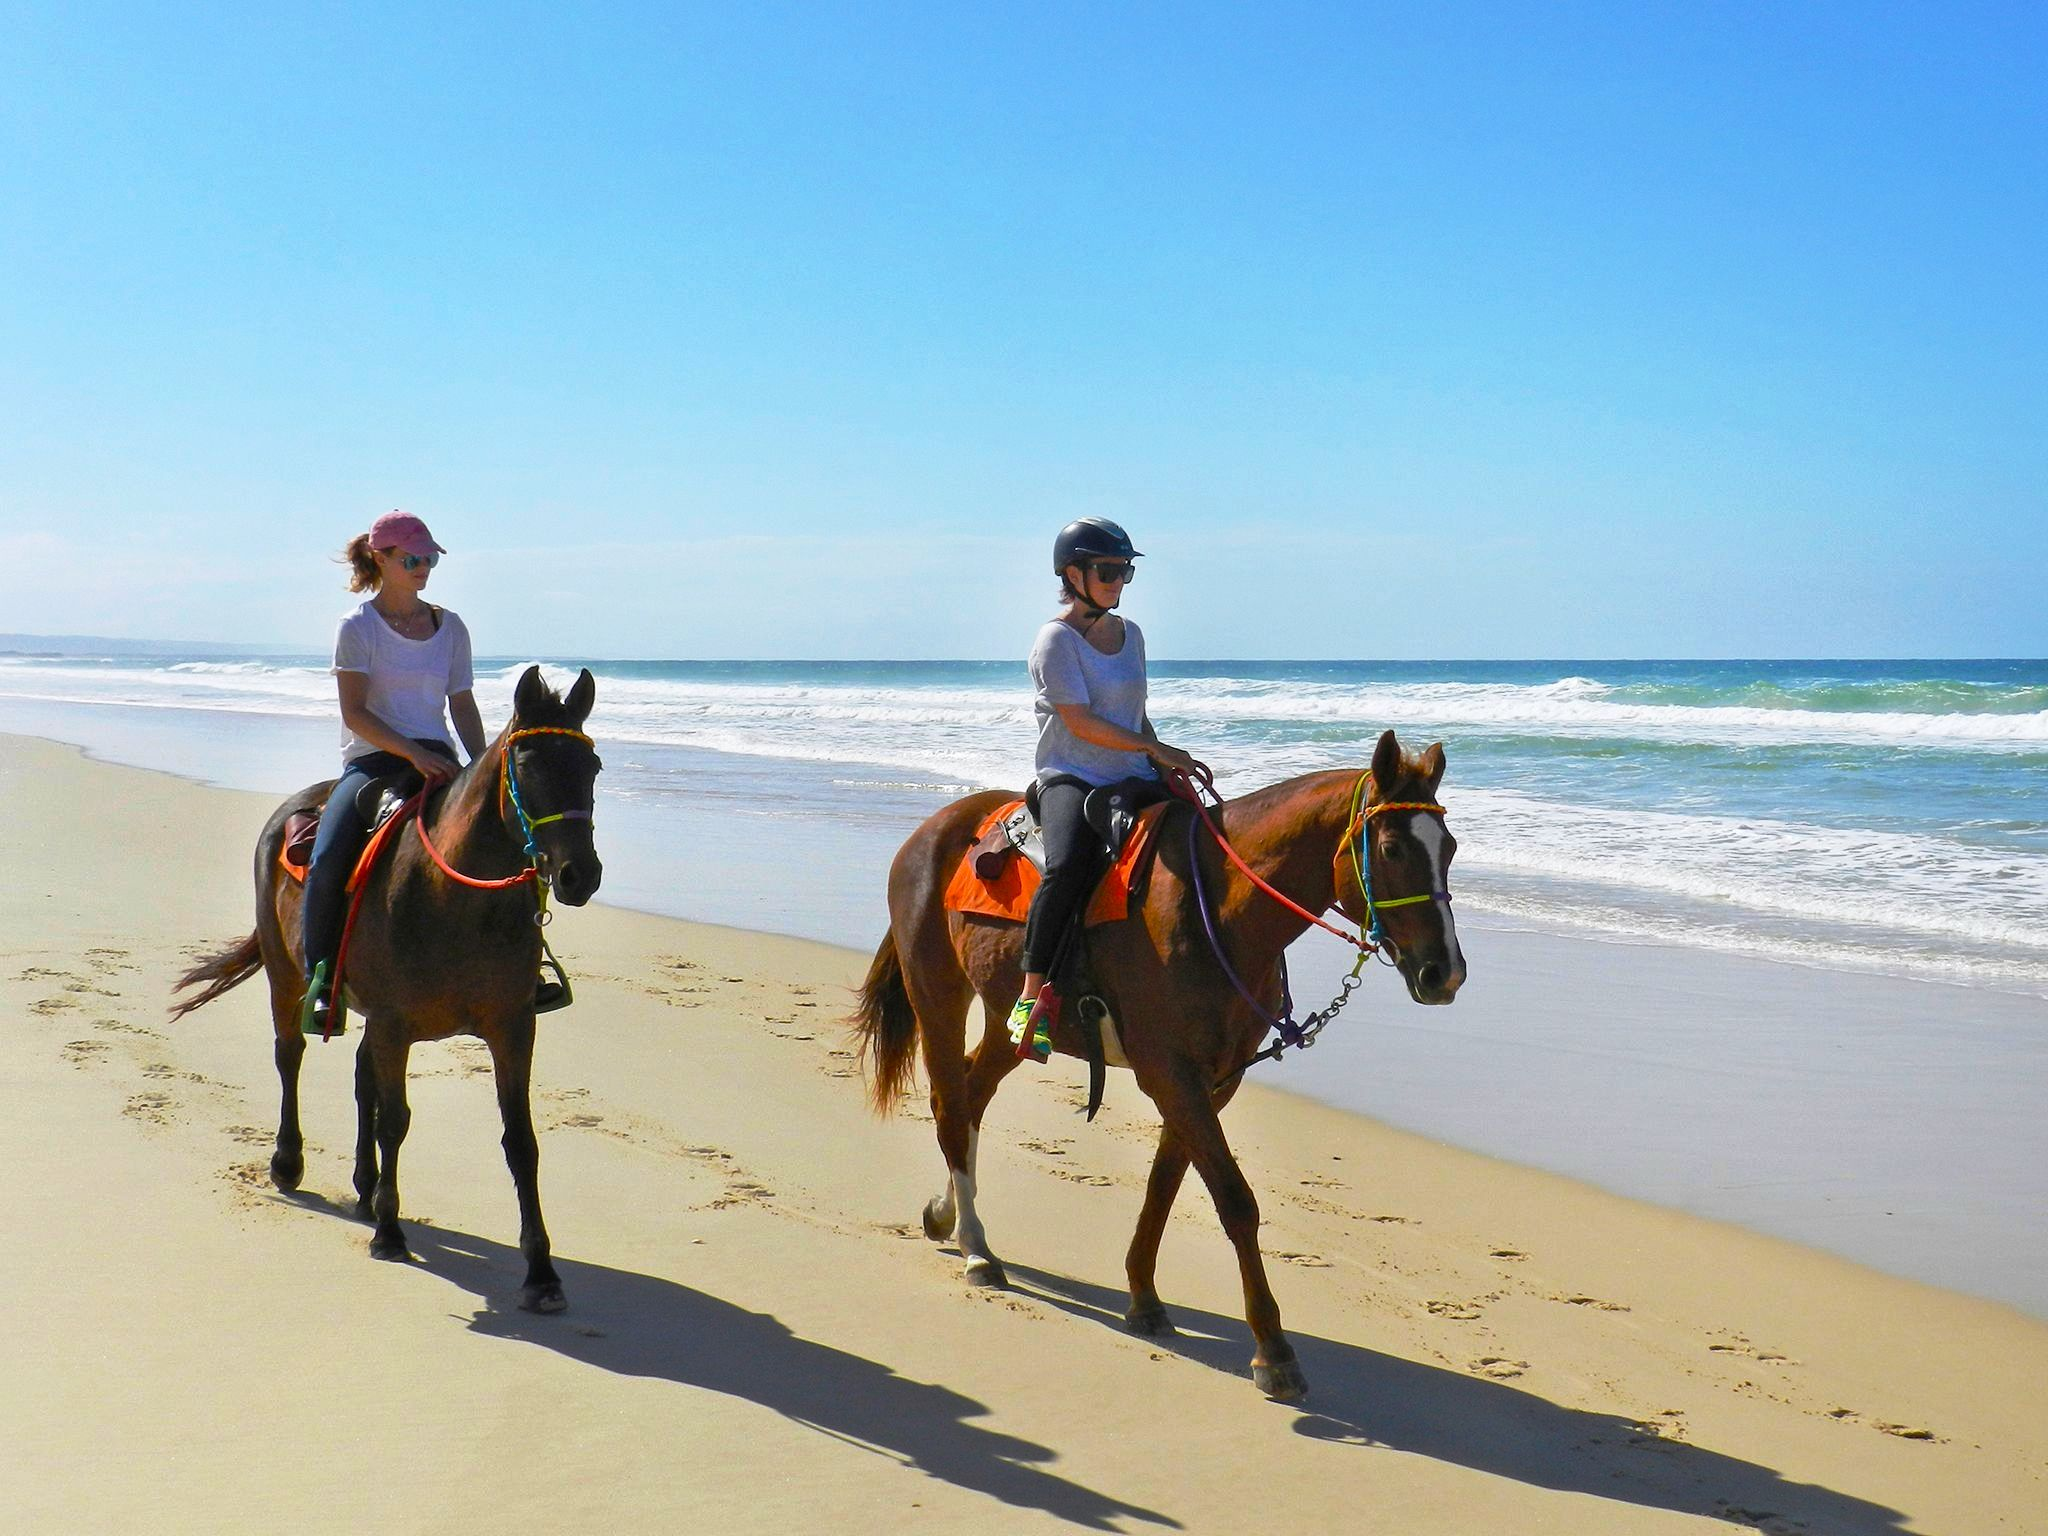 Morocco horse ride tour in the coastal city of Essaouira